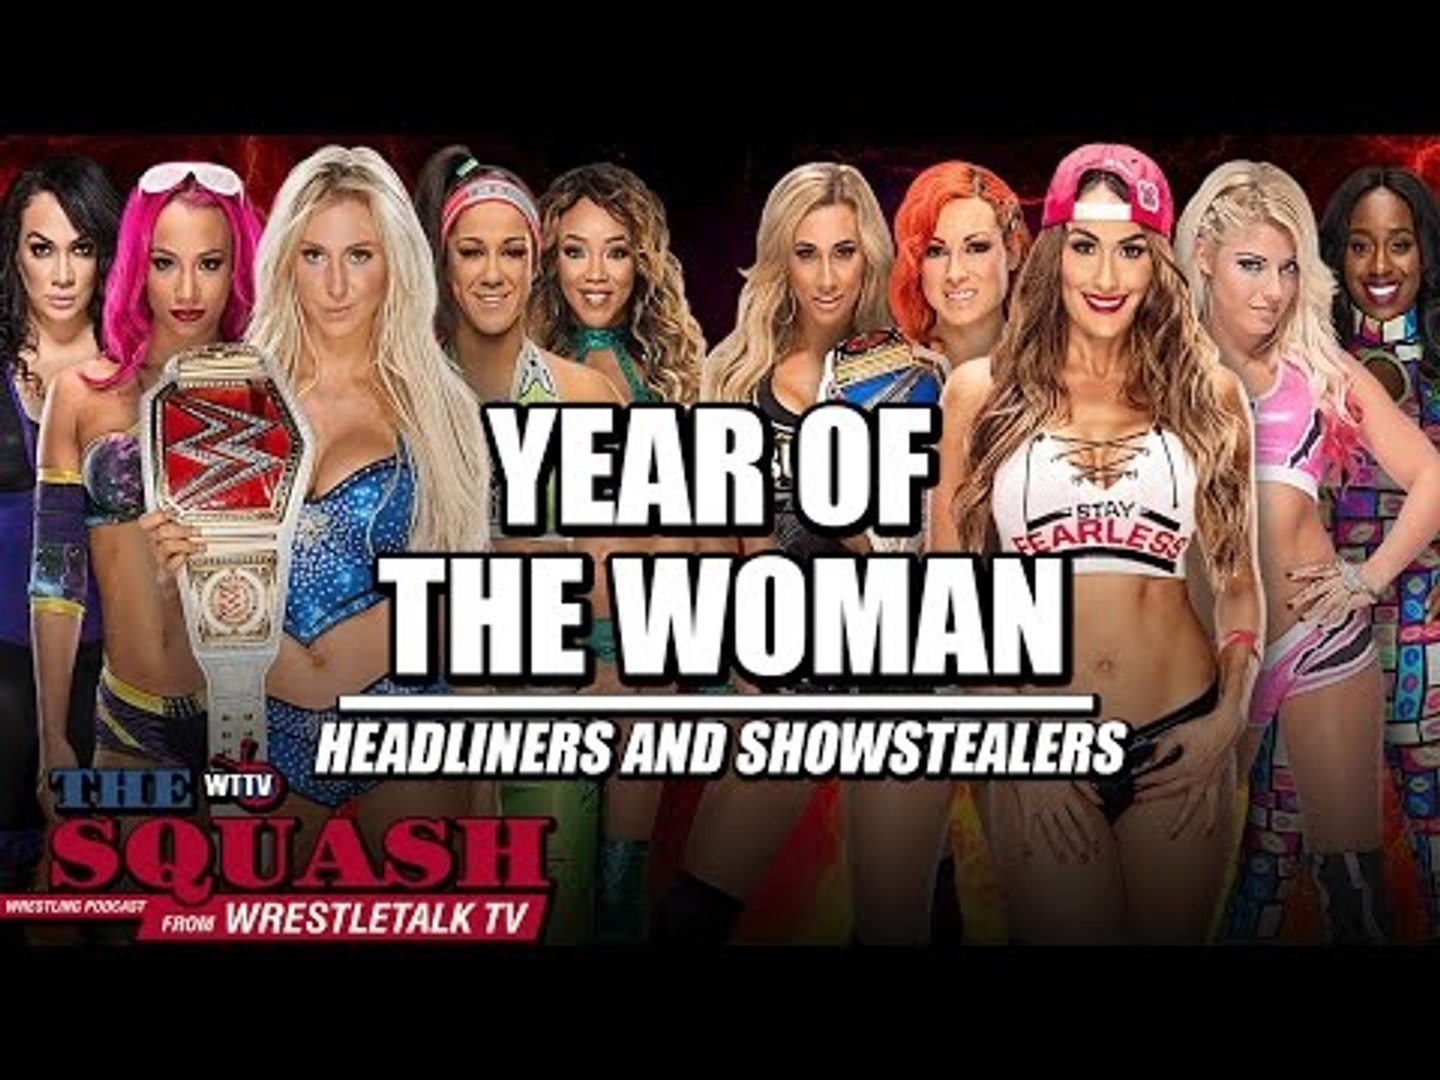 WWE's Year of the Woman! Hell in a Cell Headliners and Show Stealers | The Squash Podcast